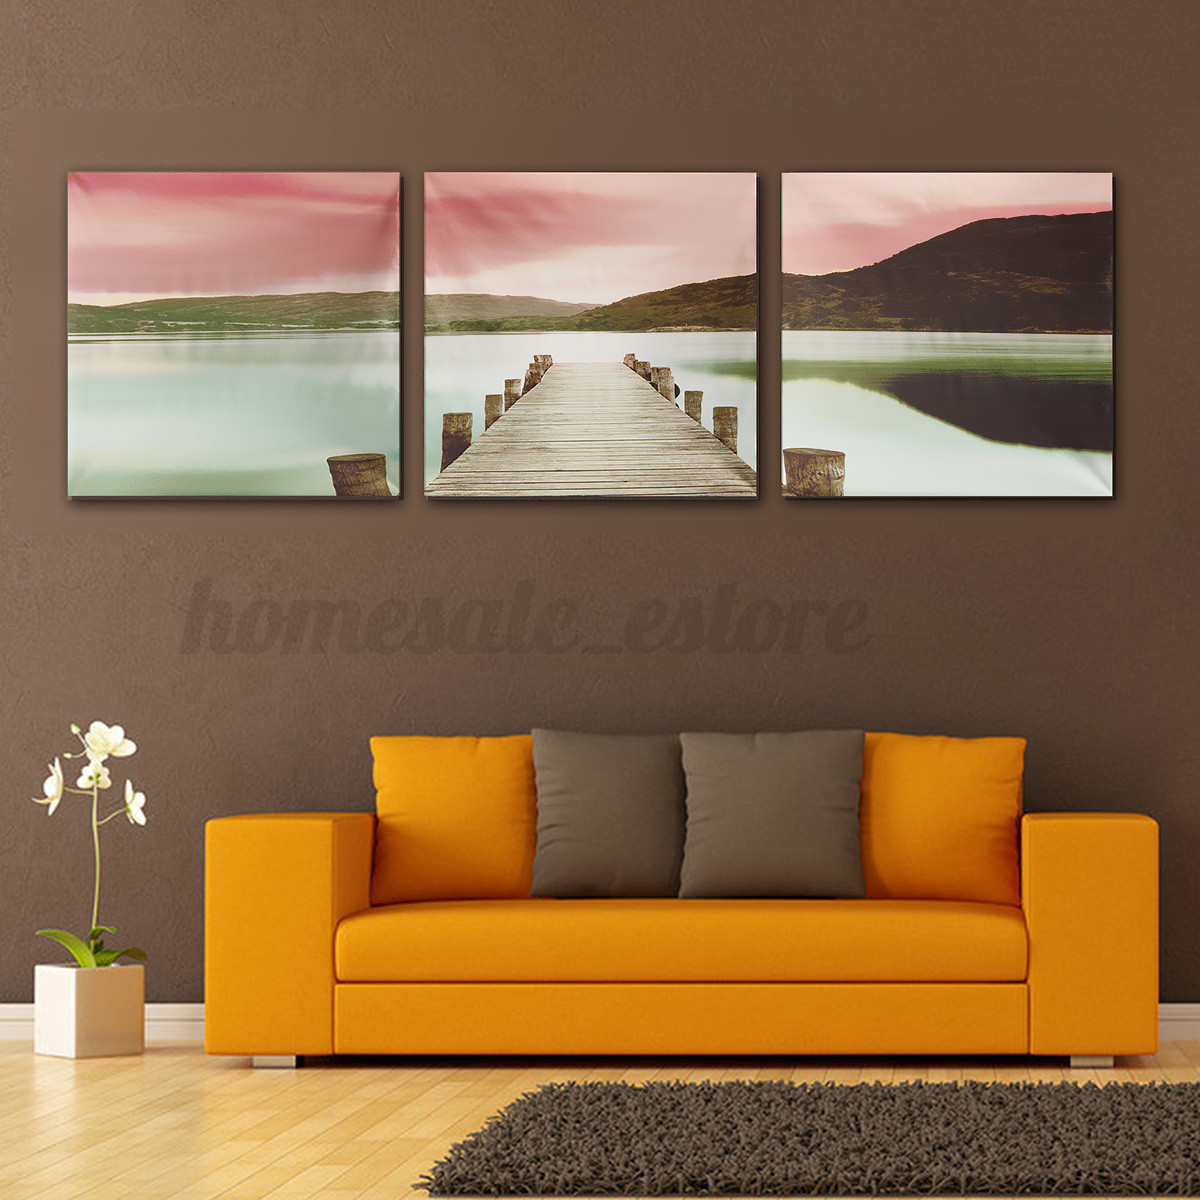 modern abstract canvas print painting picture wall mural hanging decor unframed ebay. Black Bedroom Furniture Sets. Home Design Ideas